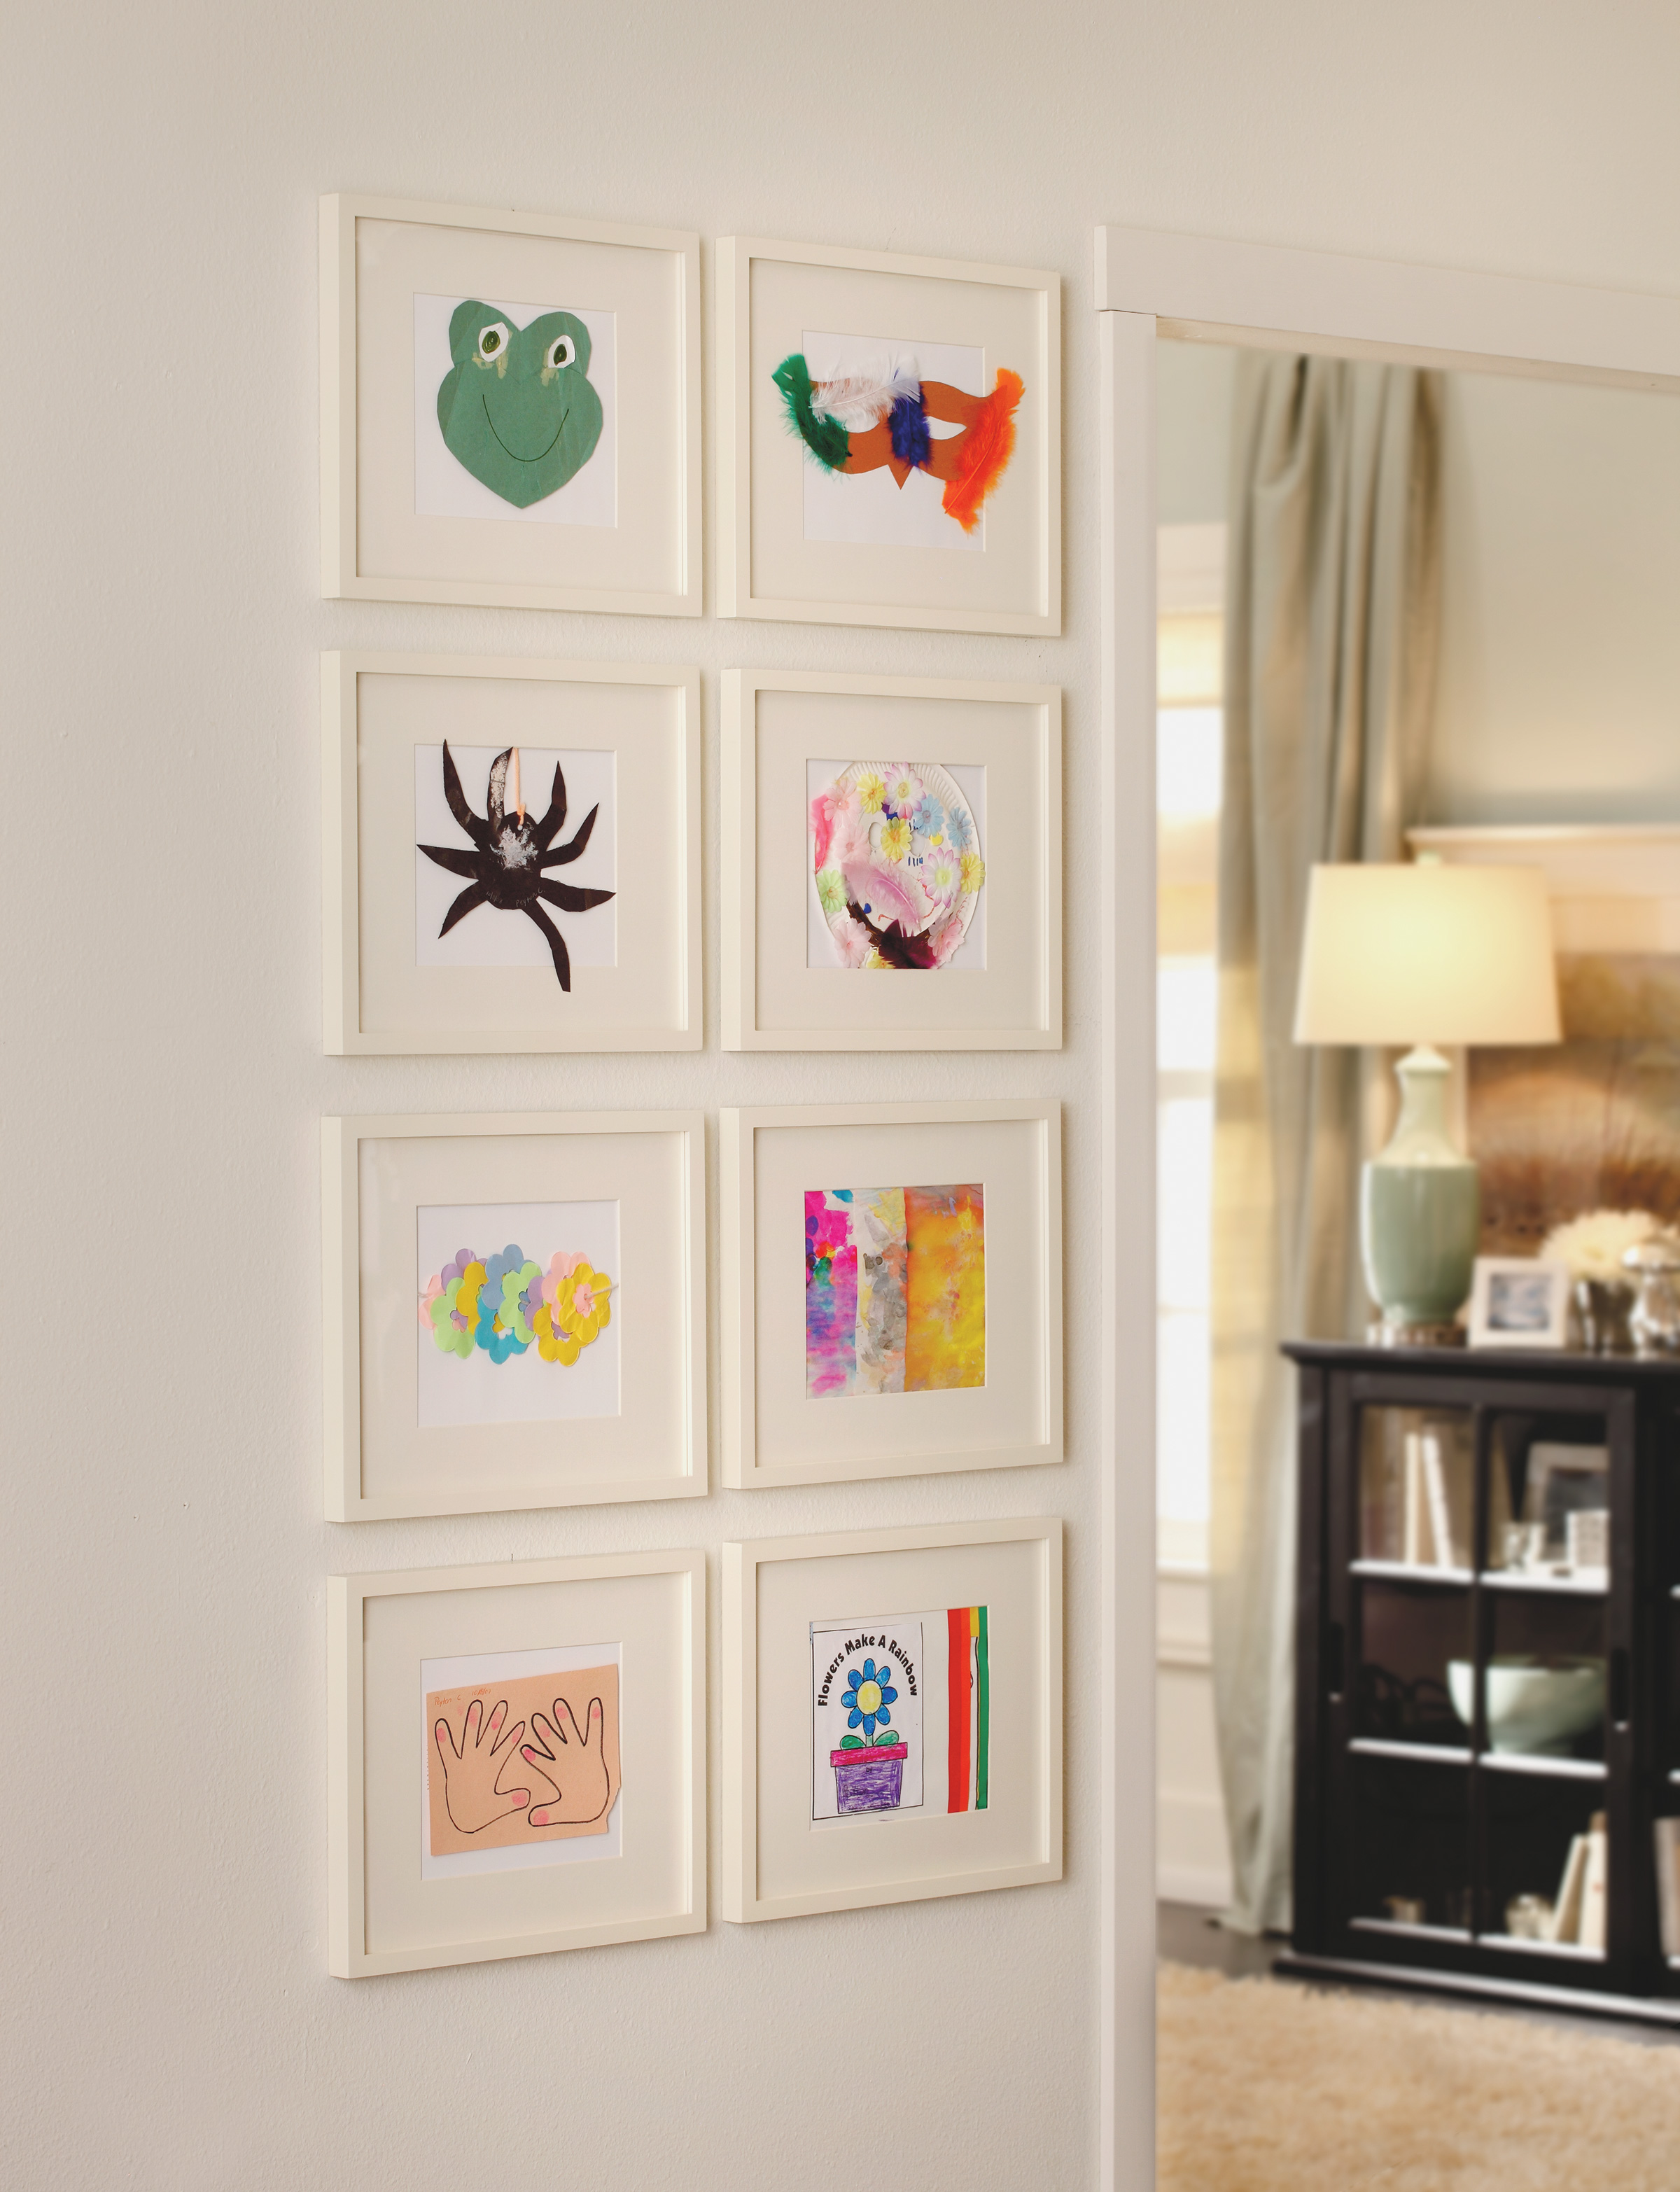 Home Decor: Kid Art in the Home - Home is Here